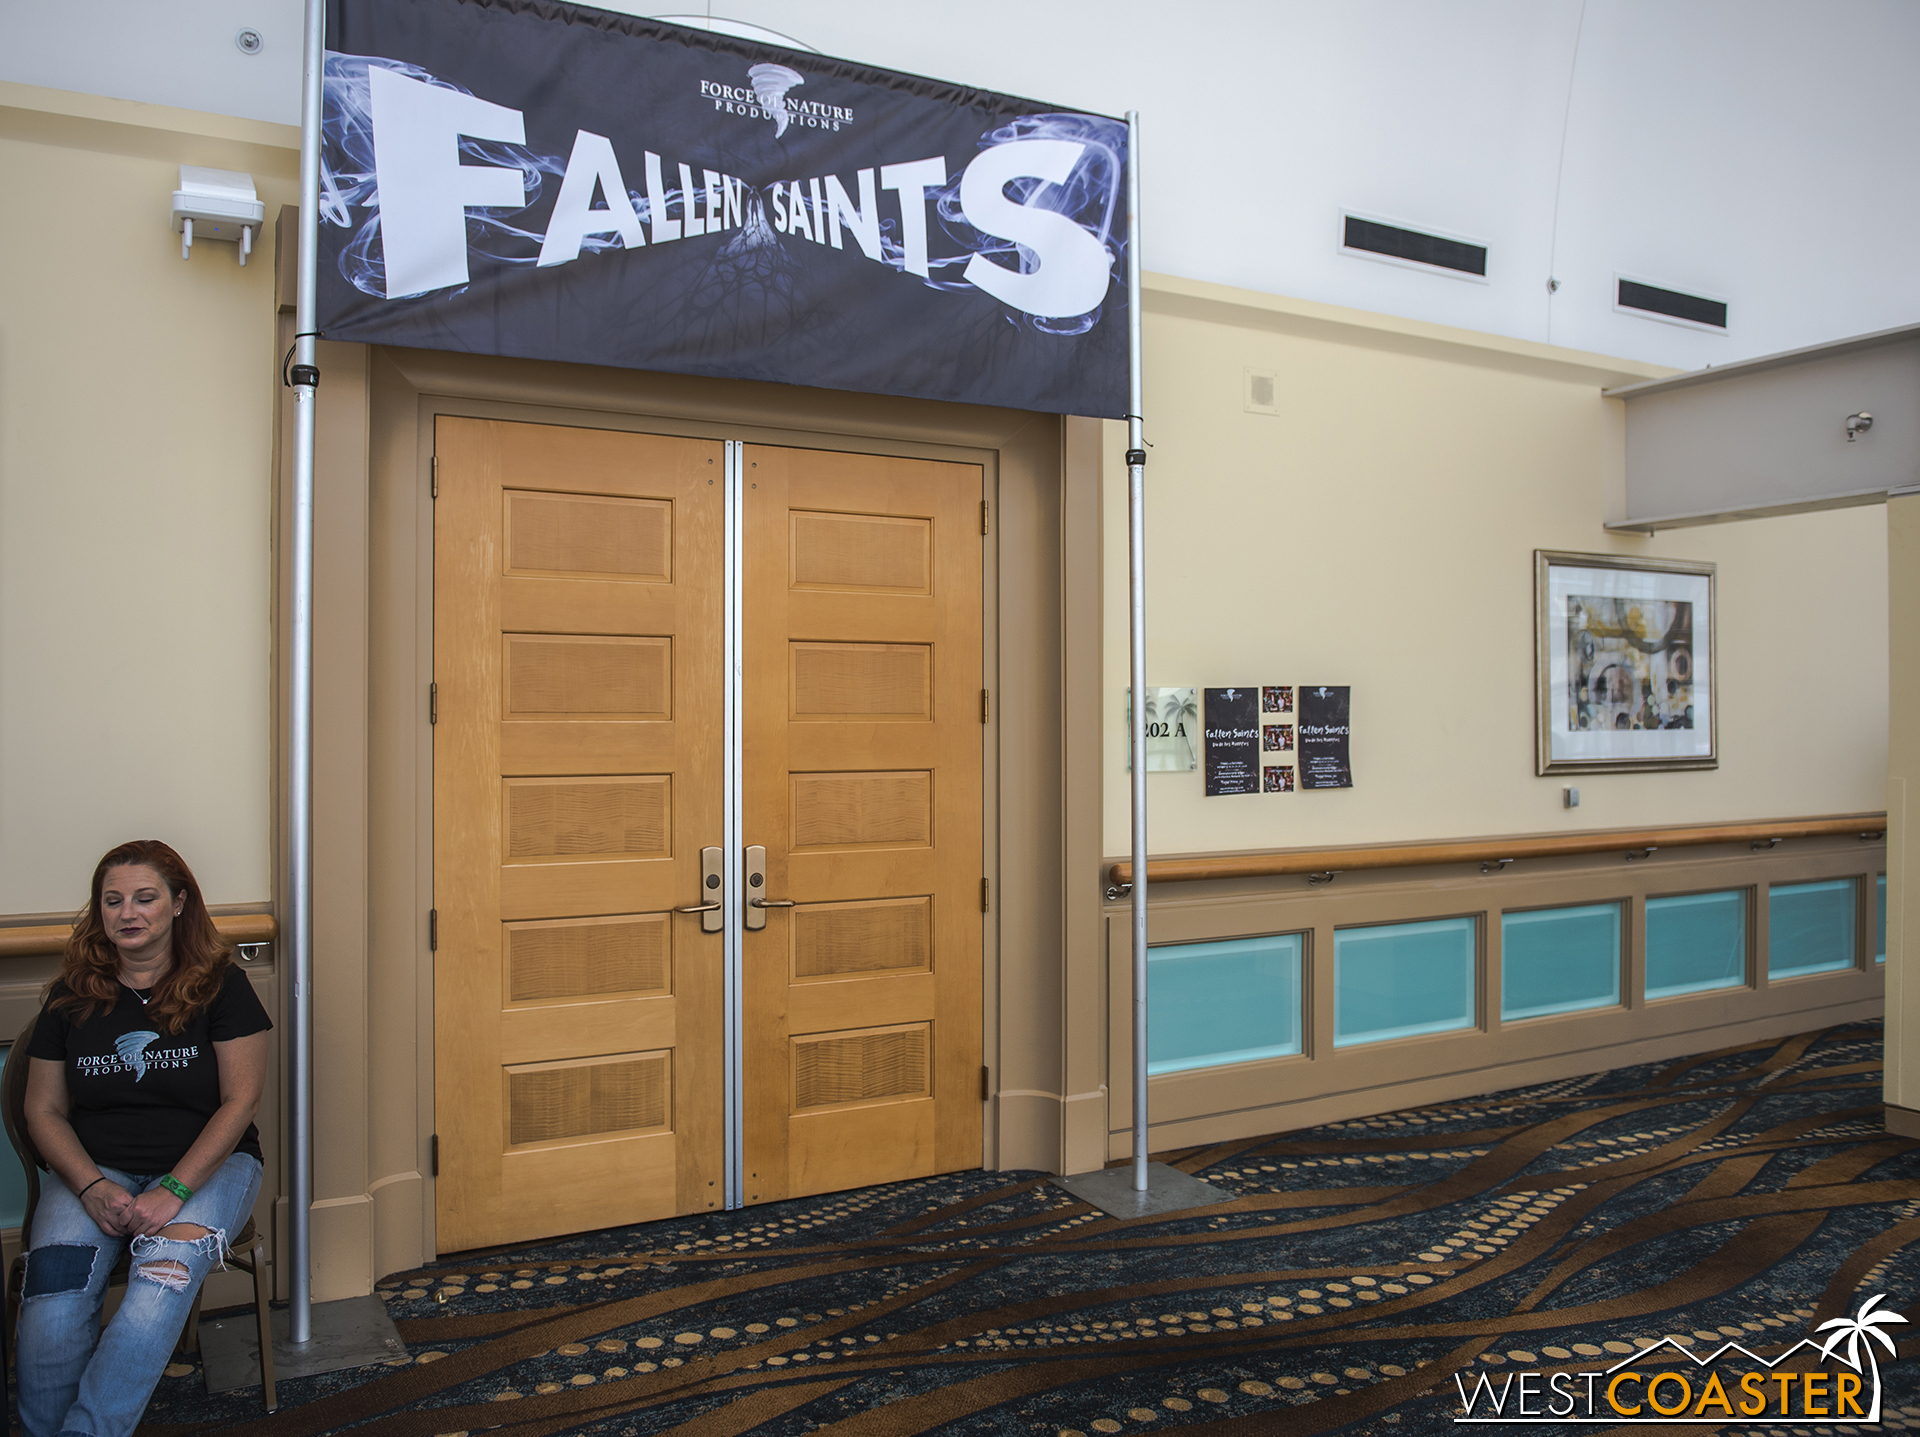 Fallen Saints was one of several show options located on the second floor of the convention center.